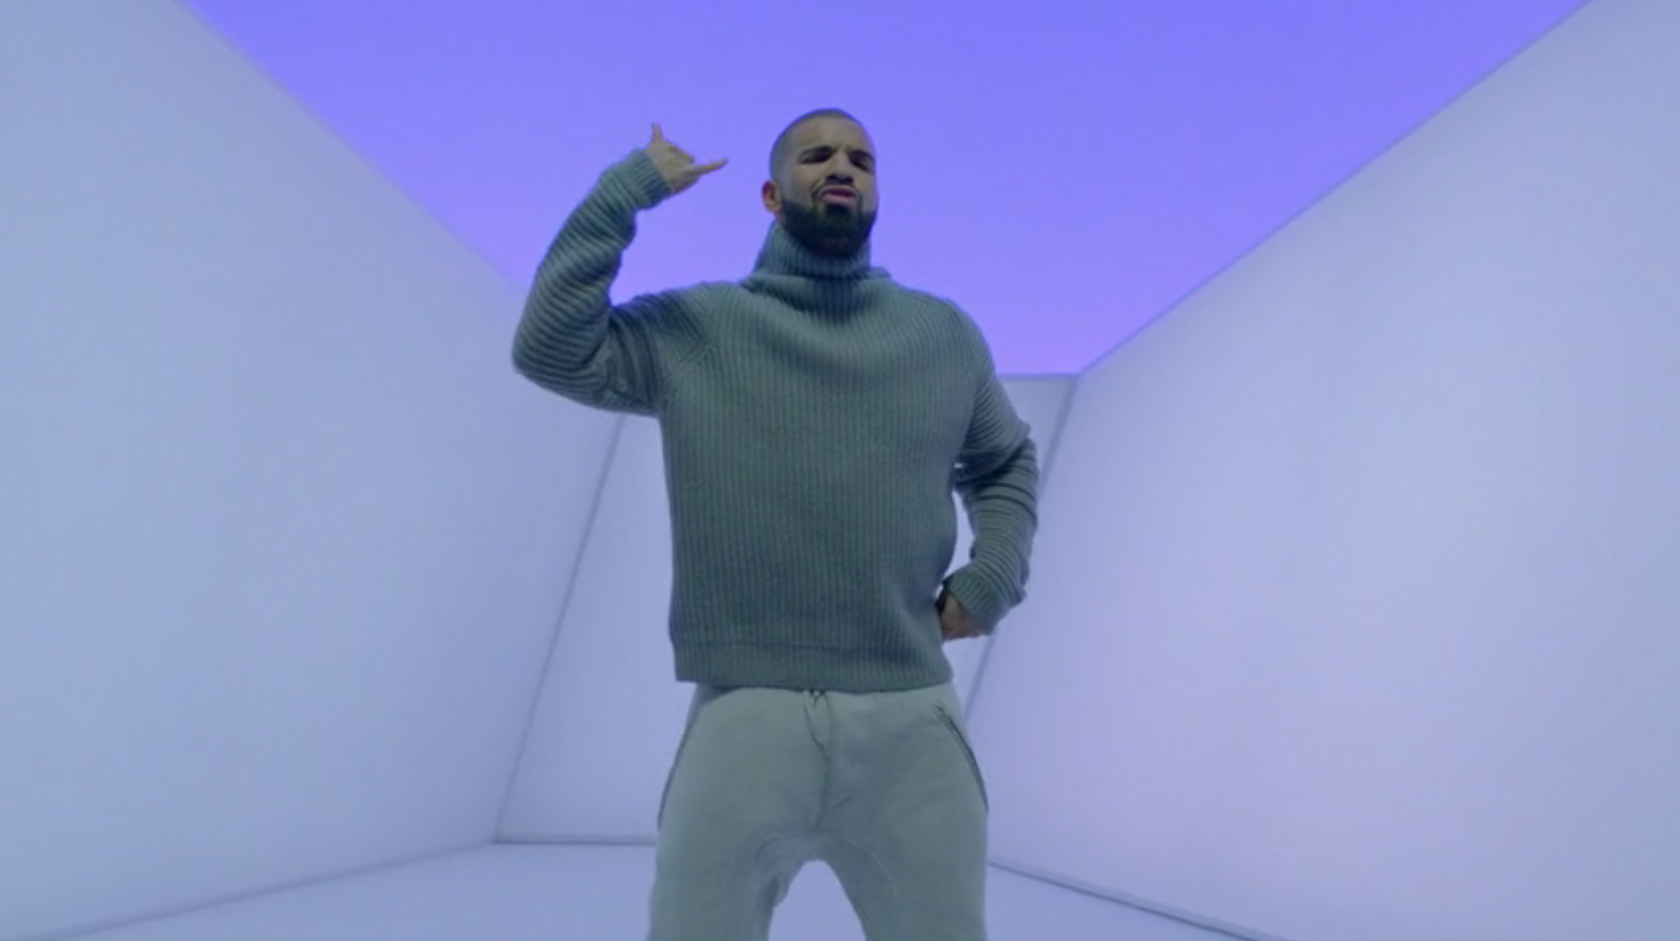 The Week In Pop: Drake, King Of The Memes - Stereogum